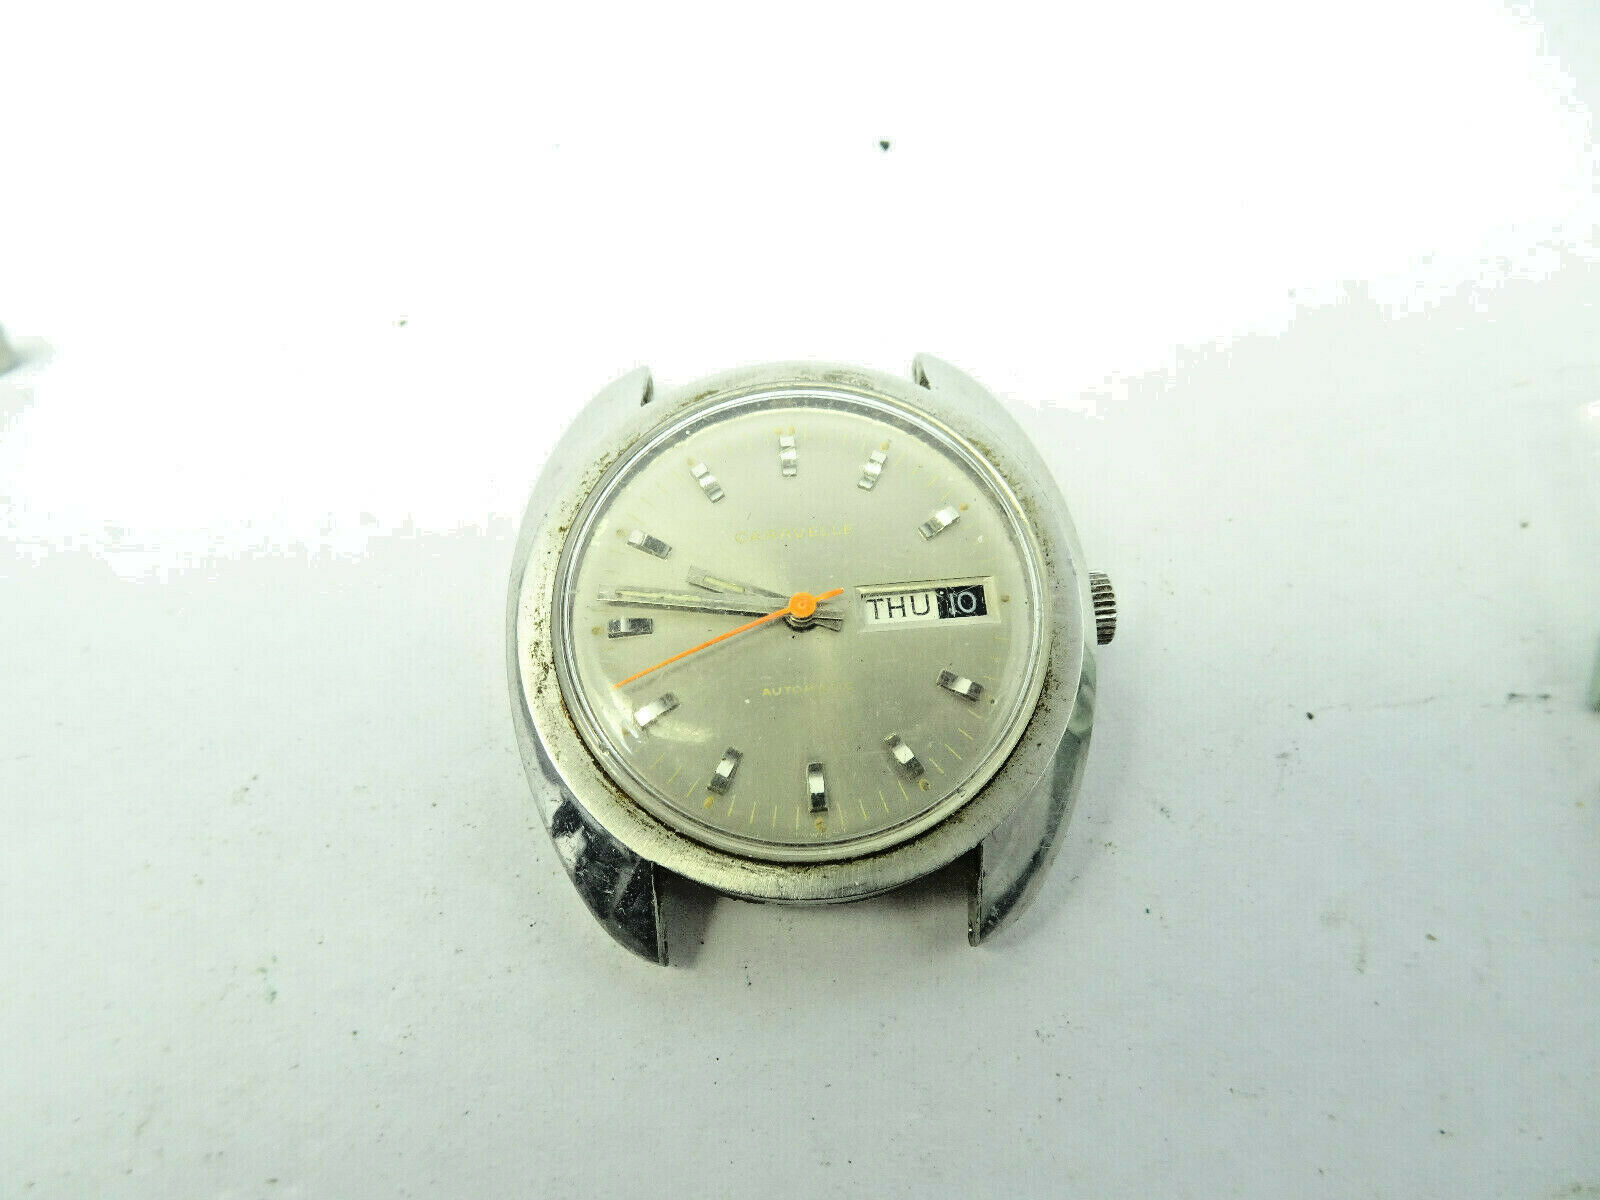 Primary image for VINTAGE 1970 CARAVELLE 11 UKACB STAINLESS STEEL day date AUTOMATIC WATCH RUNS